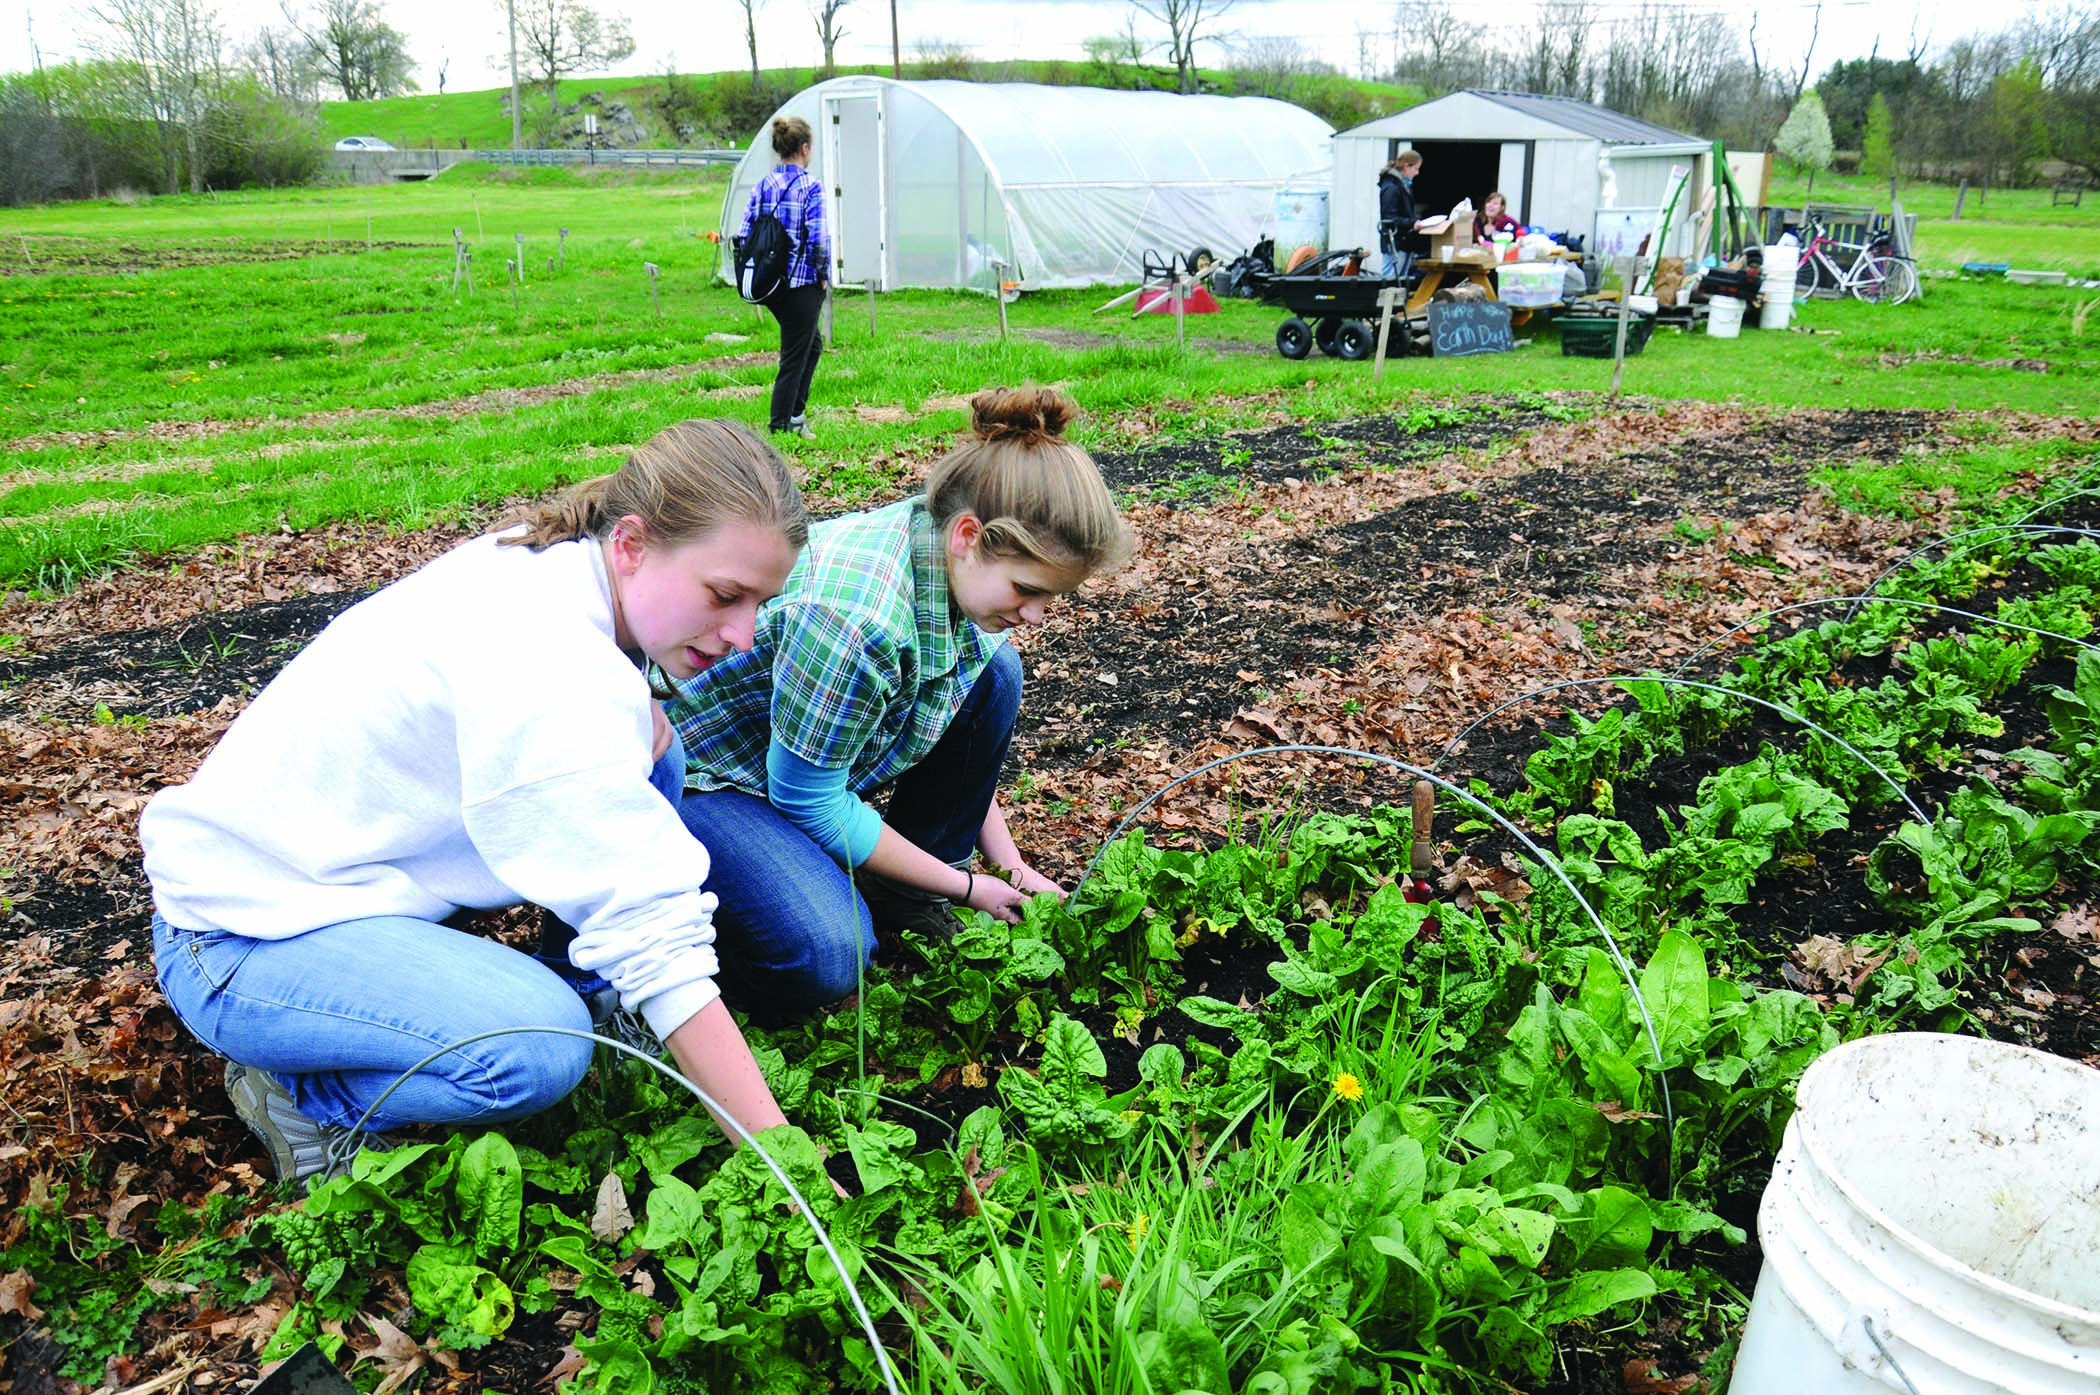 Members of the Shippensburg University Farm Club prepare the plot for spring planting. Part of their harvest is donated to Shippensburg Produce and Outreach.